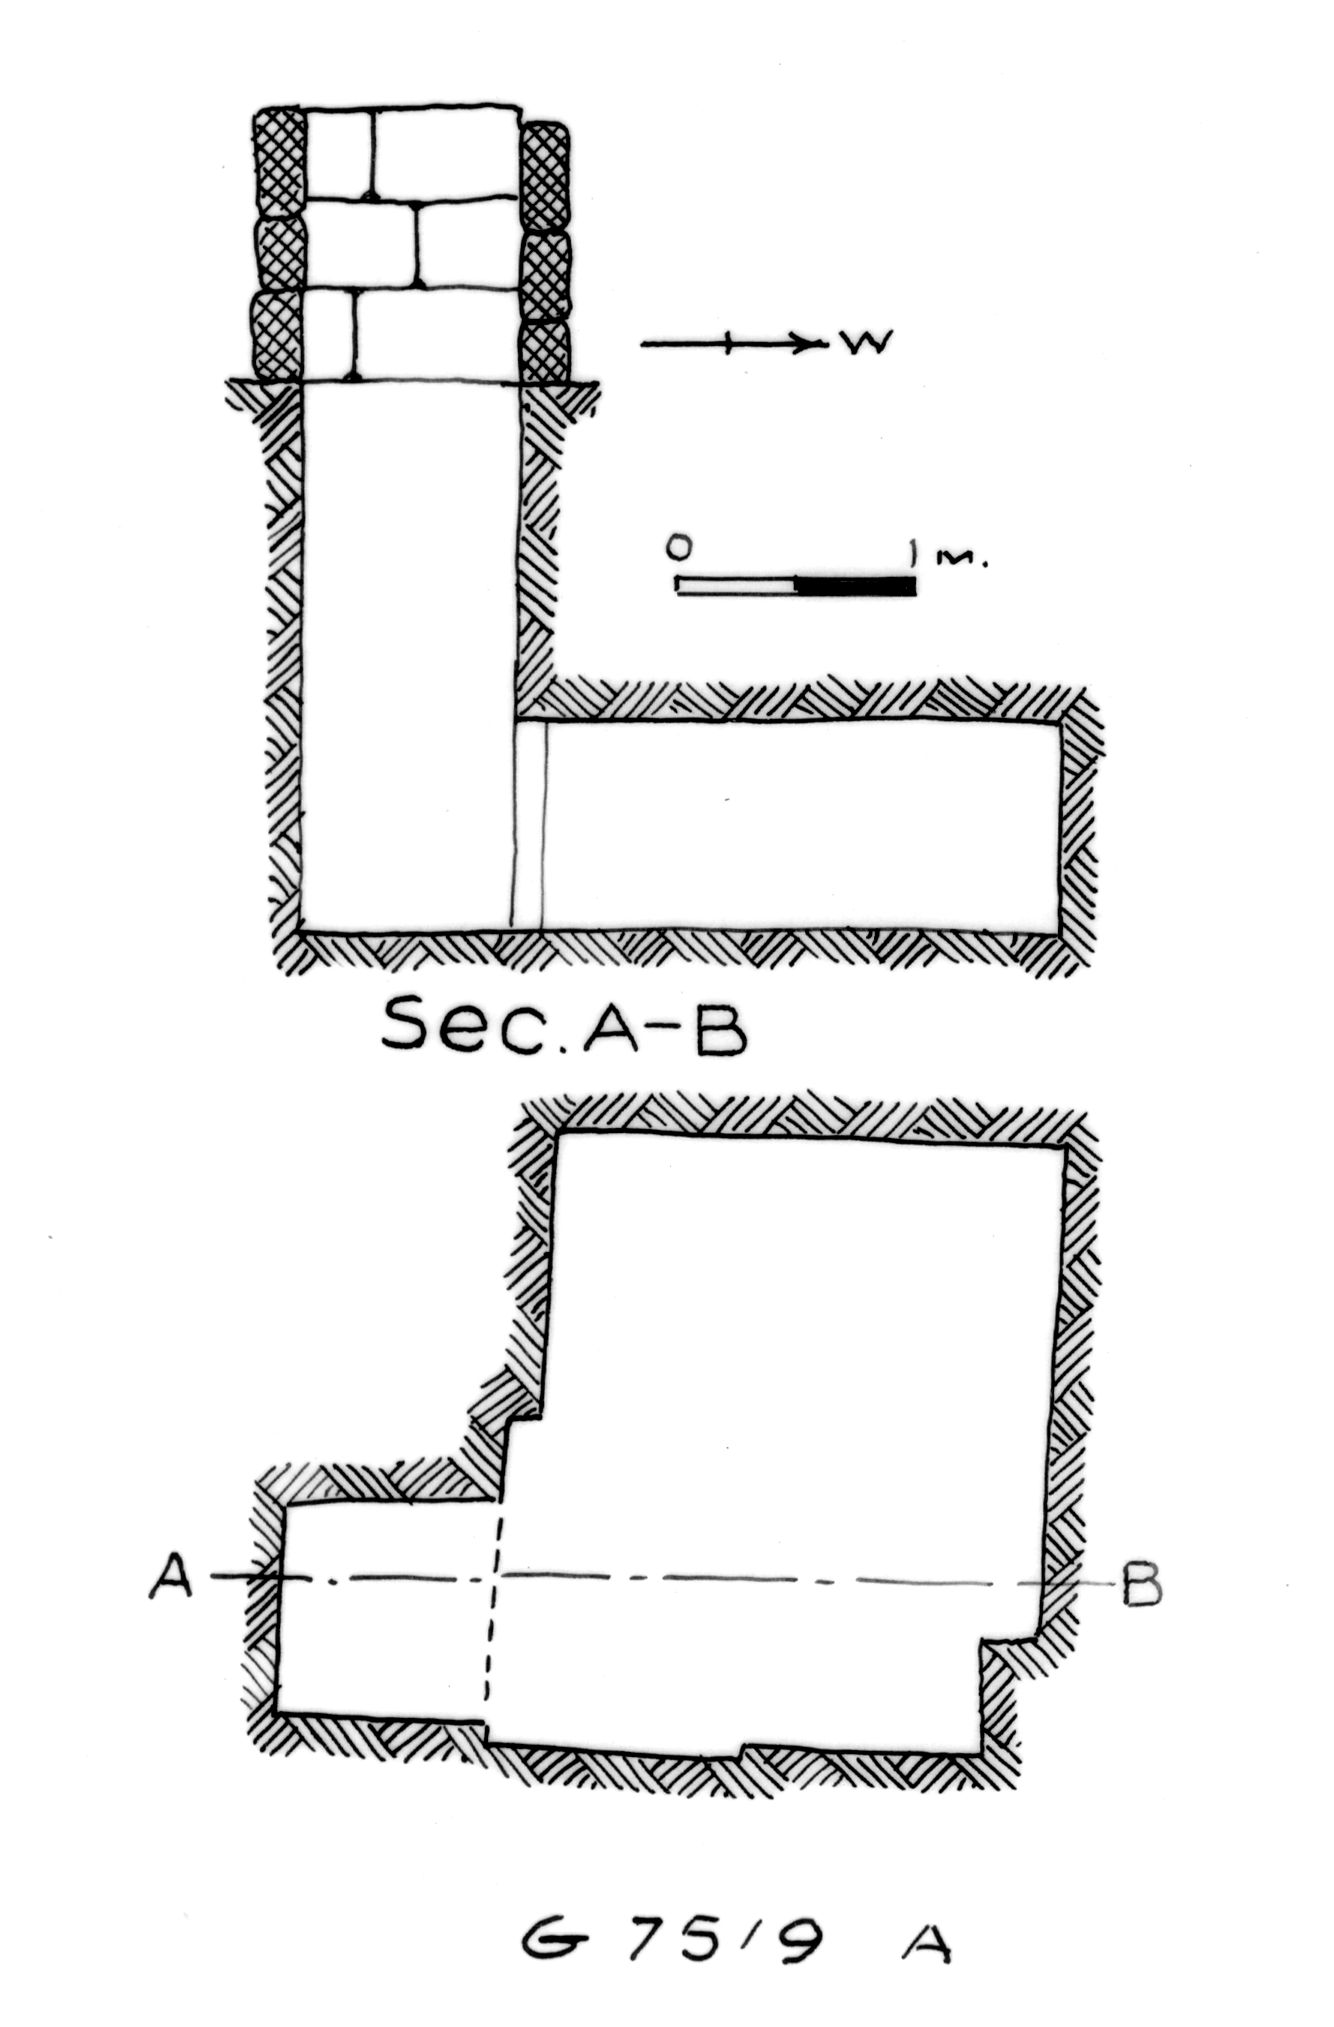 Maps and plans: G 7519, Shaft A